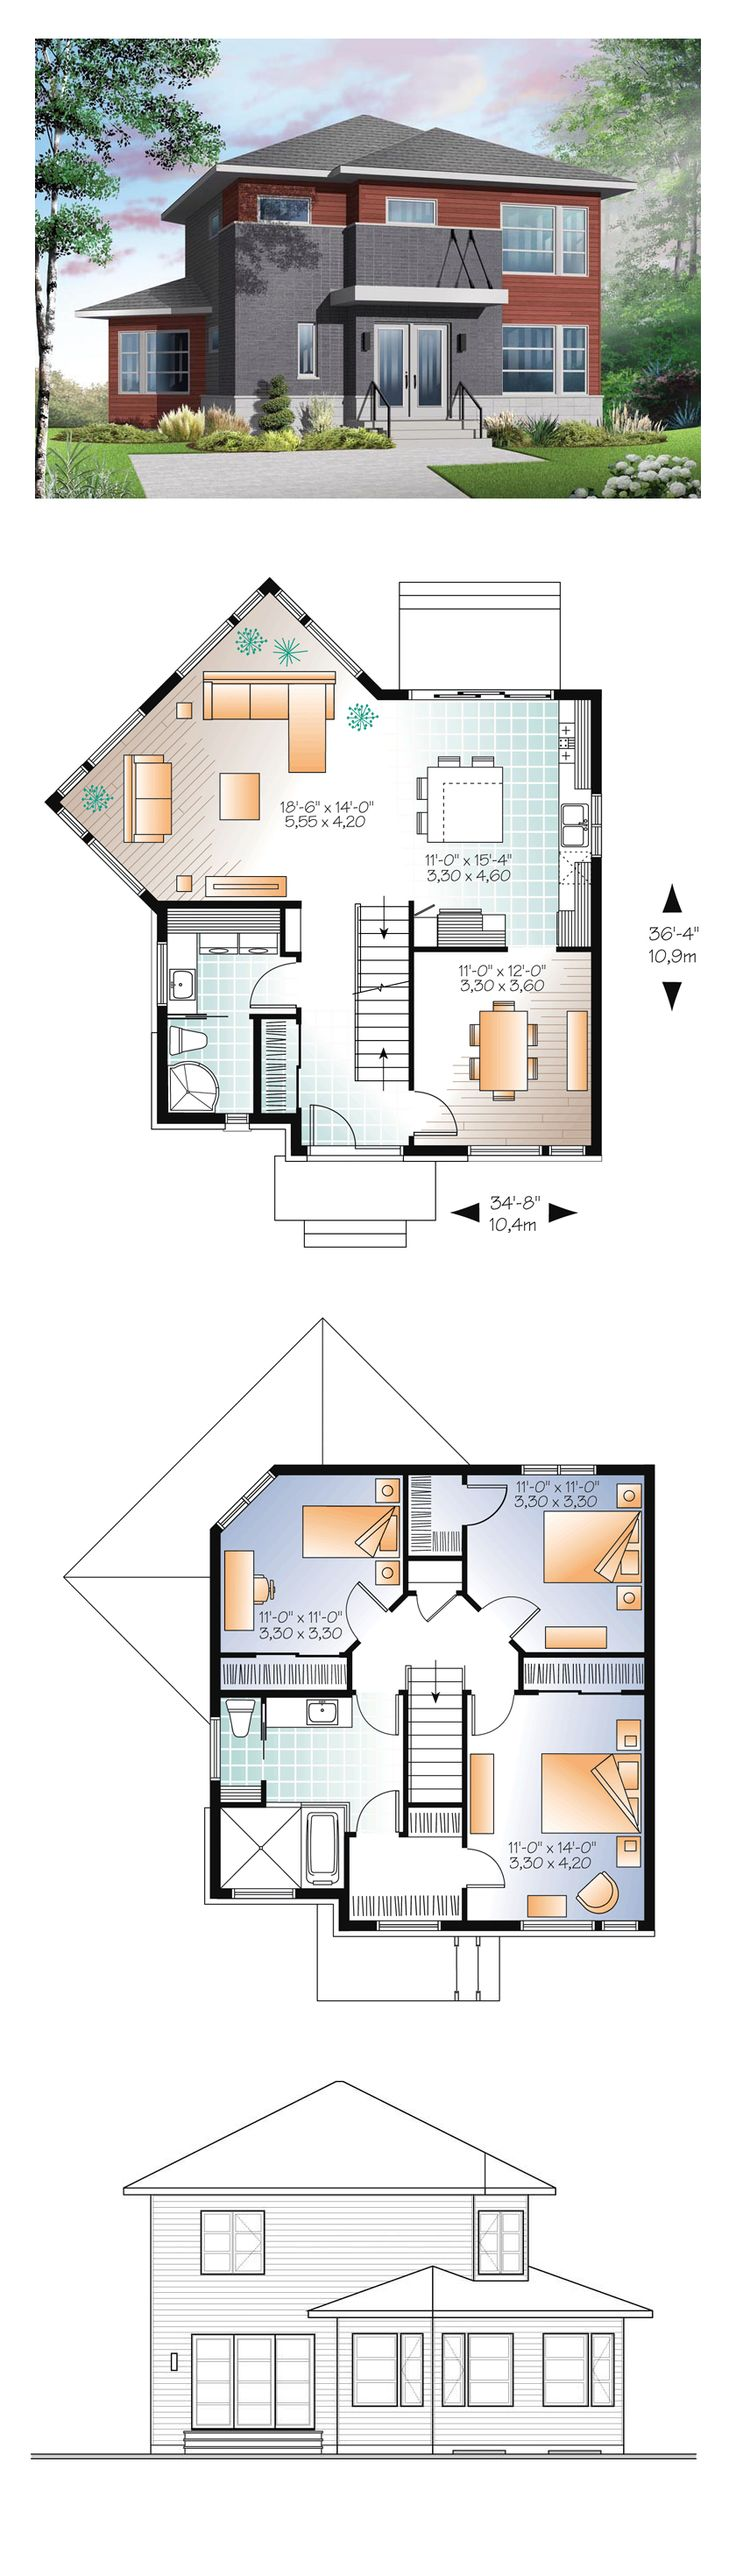 49 best Modern House Plans images on Pinterest | Modern houses ...